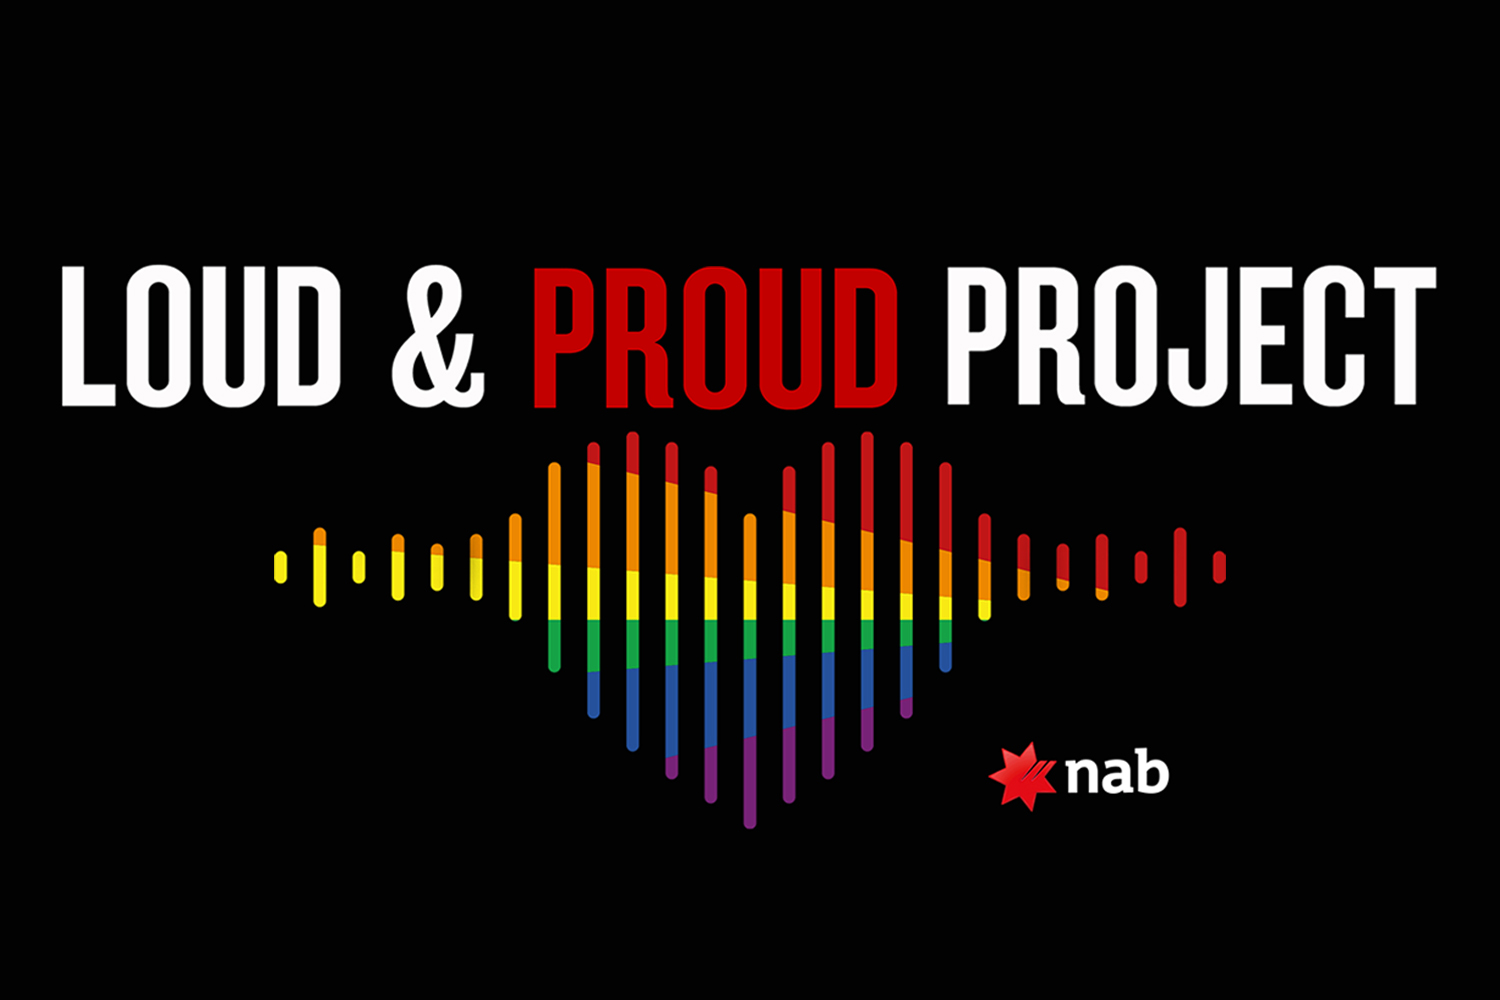 Loud & Proud Project, by National Australia Bank